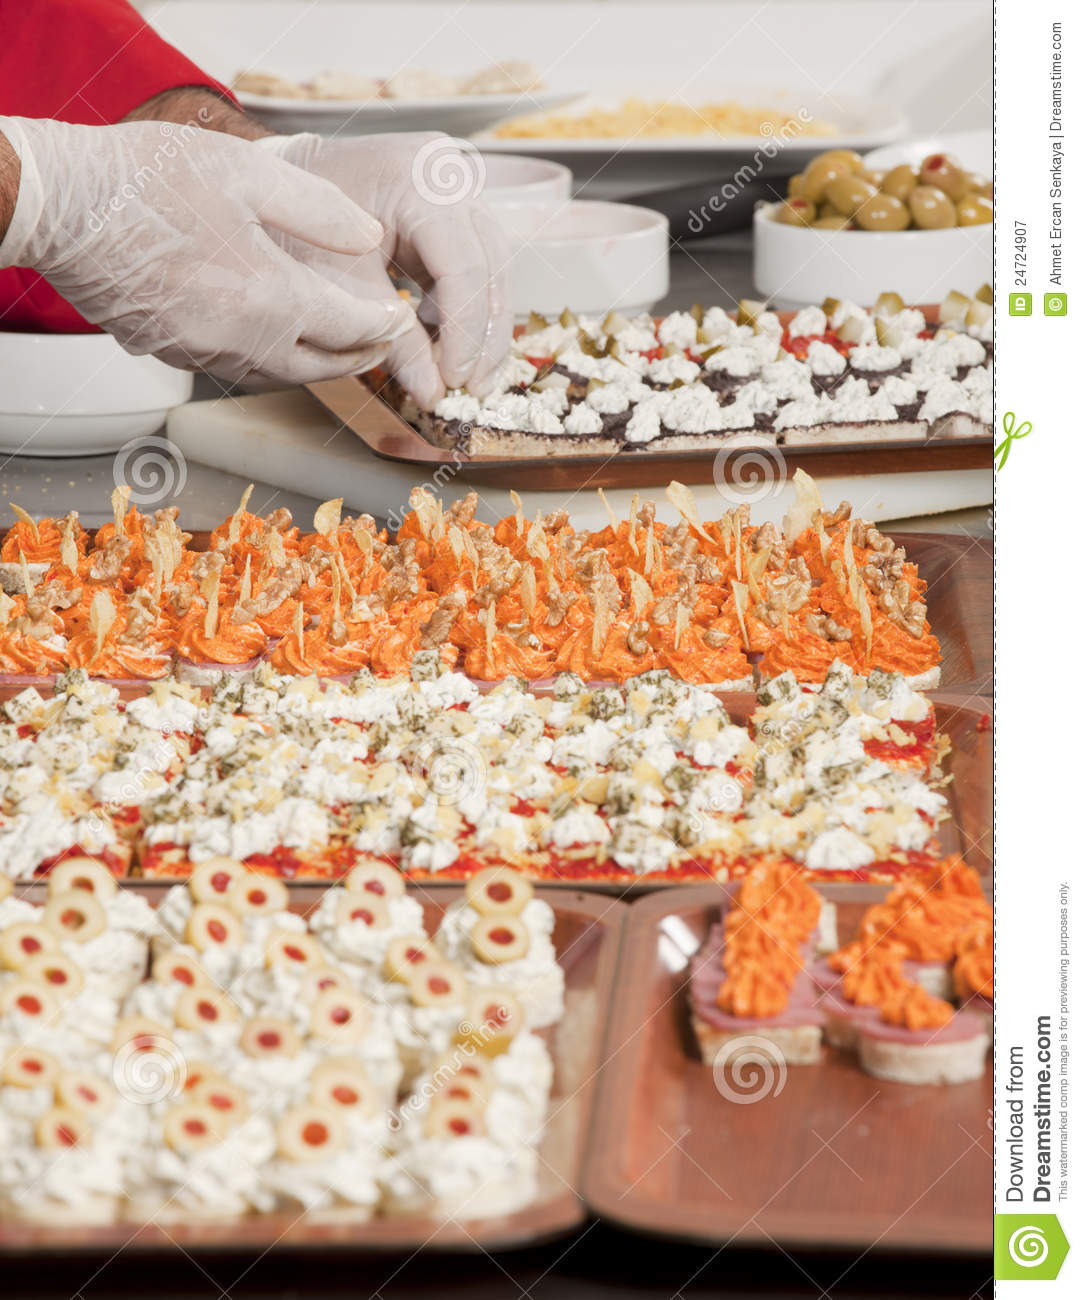 Chef garnishing canapes for party royalty free stock for Canape garnishes